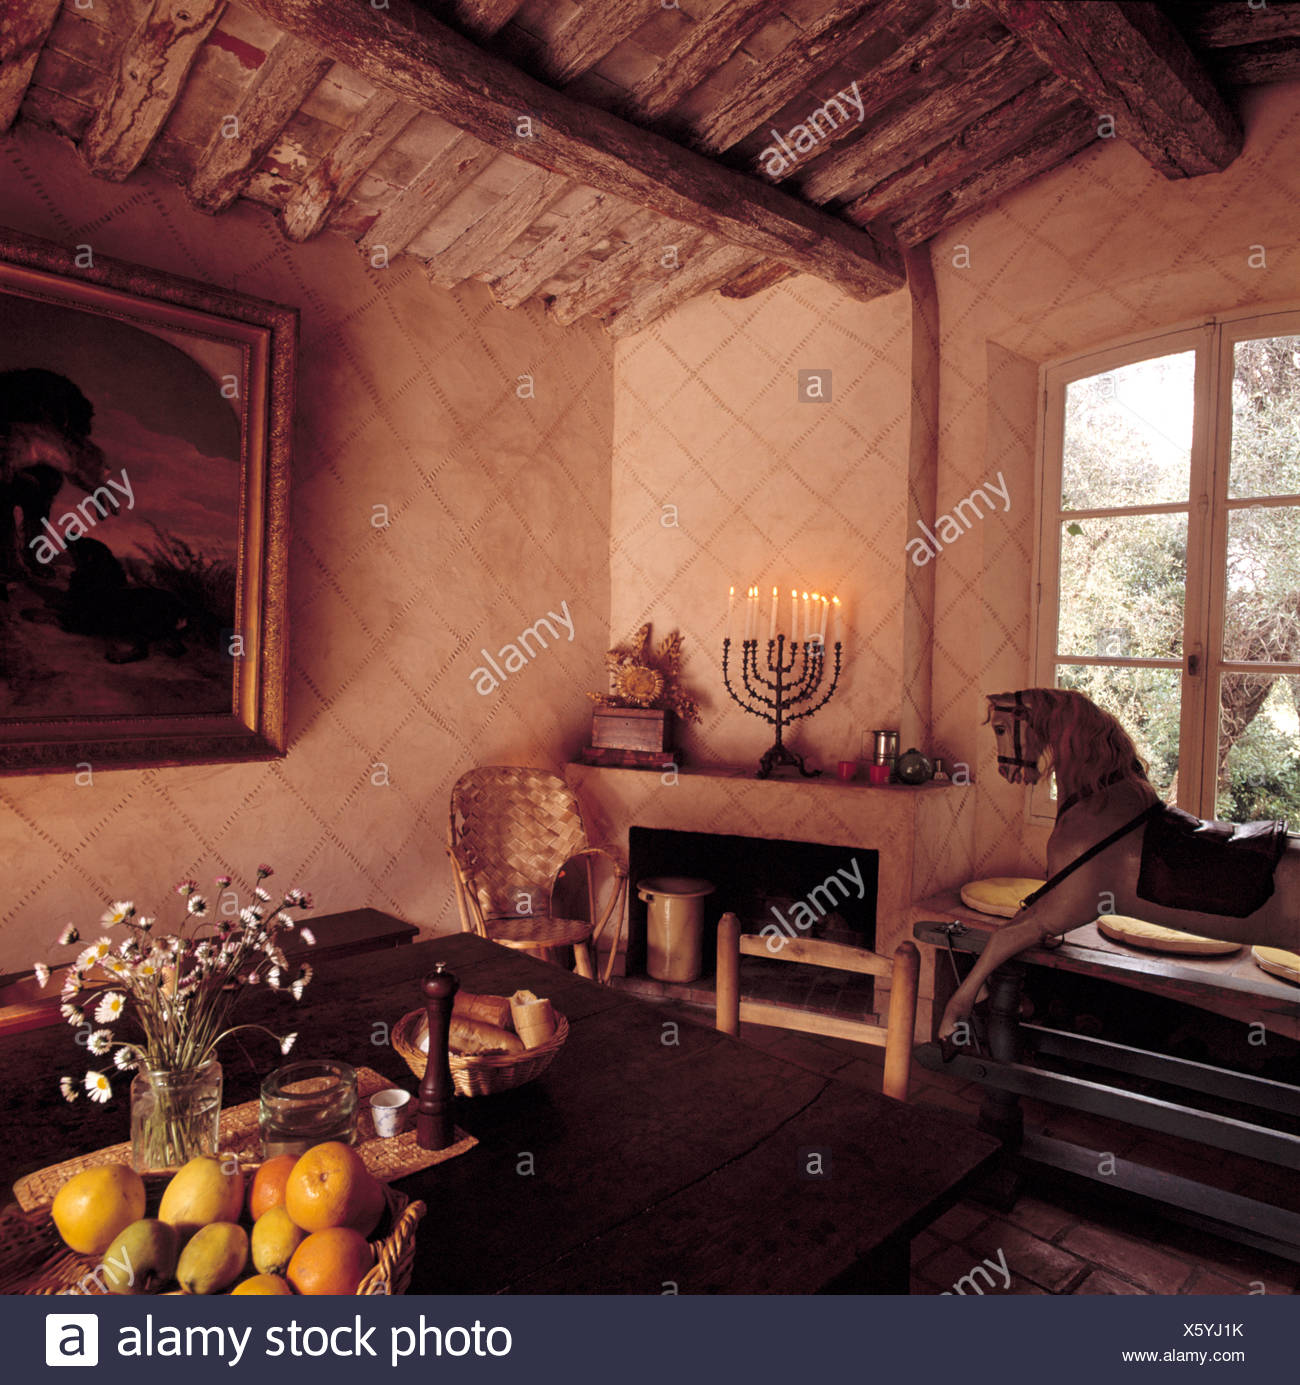 Ceilings Ceiling Domestic Stockfotos & Ceilings Ceiling Domestic ...